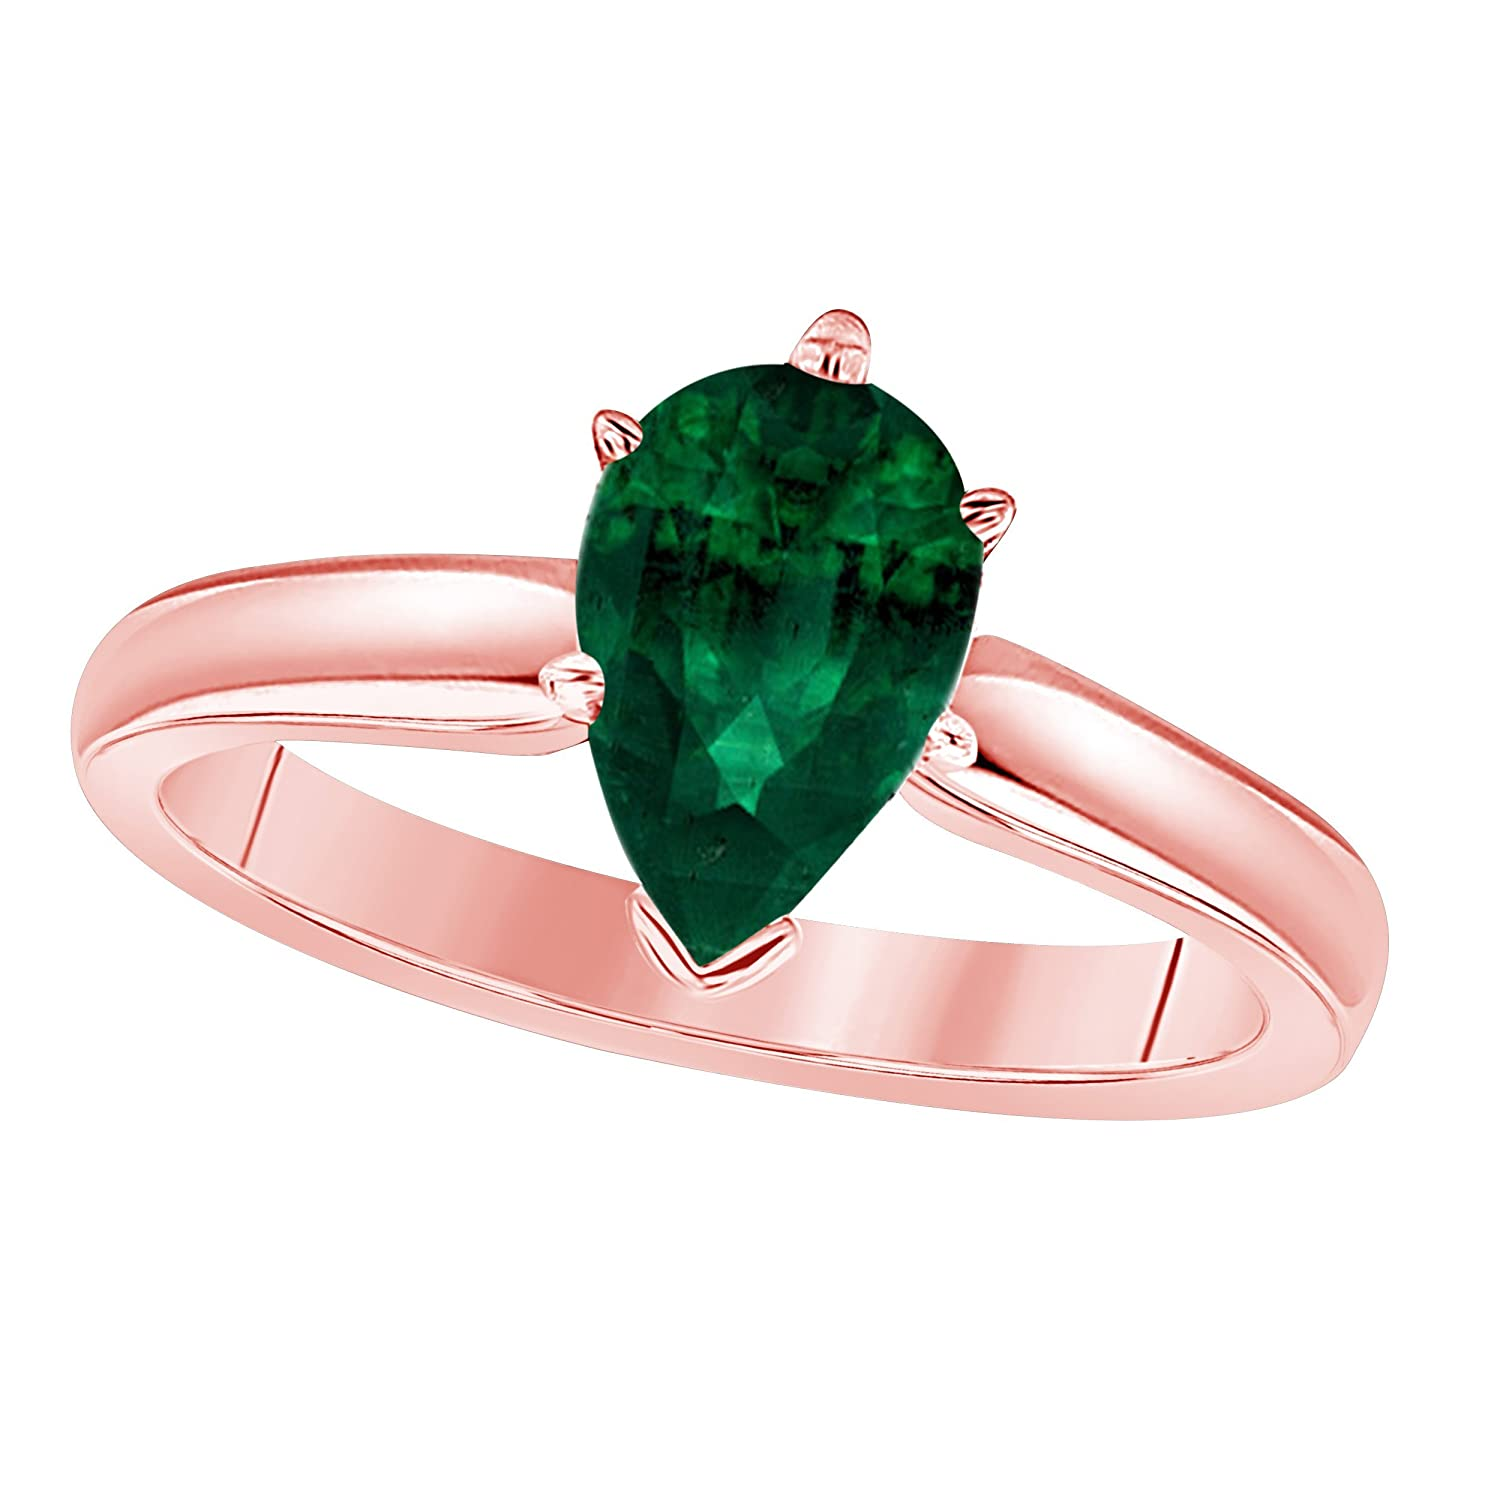 Jewelryhub 14k Rose Gold Plated Sterling Silver Pear Cut Created Green Emerald CZ Solitaire Engagement Ring 1.75 CTW For Womens